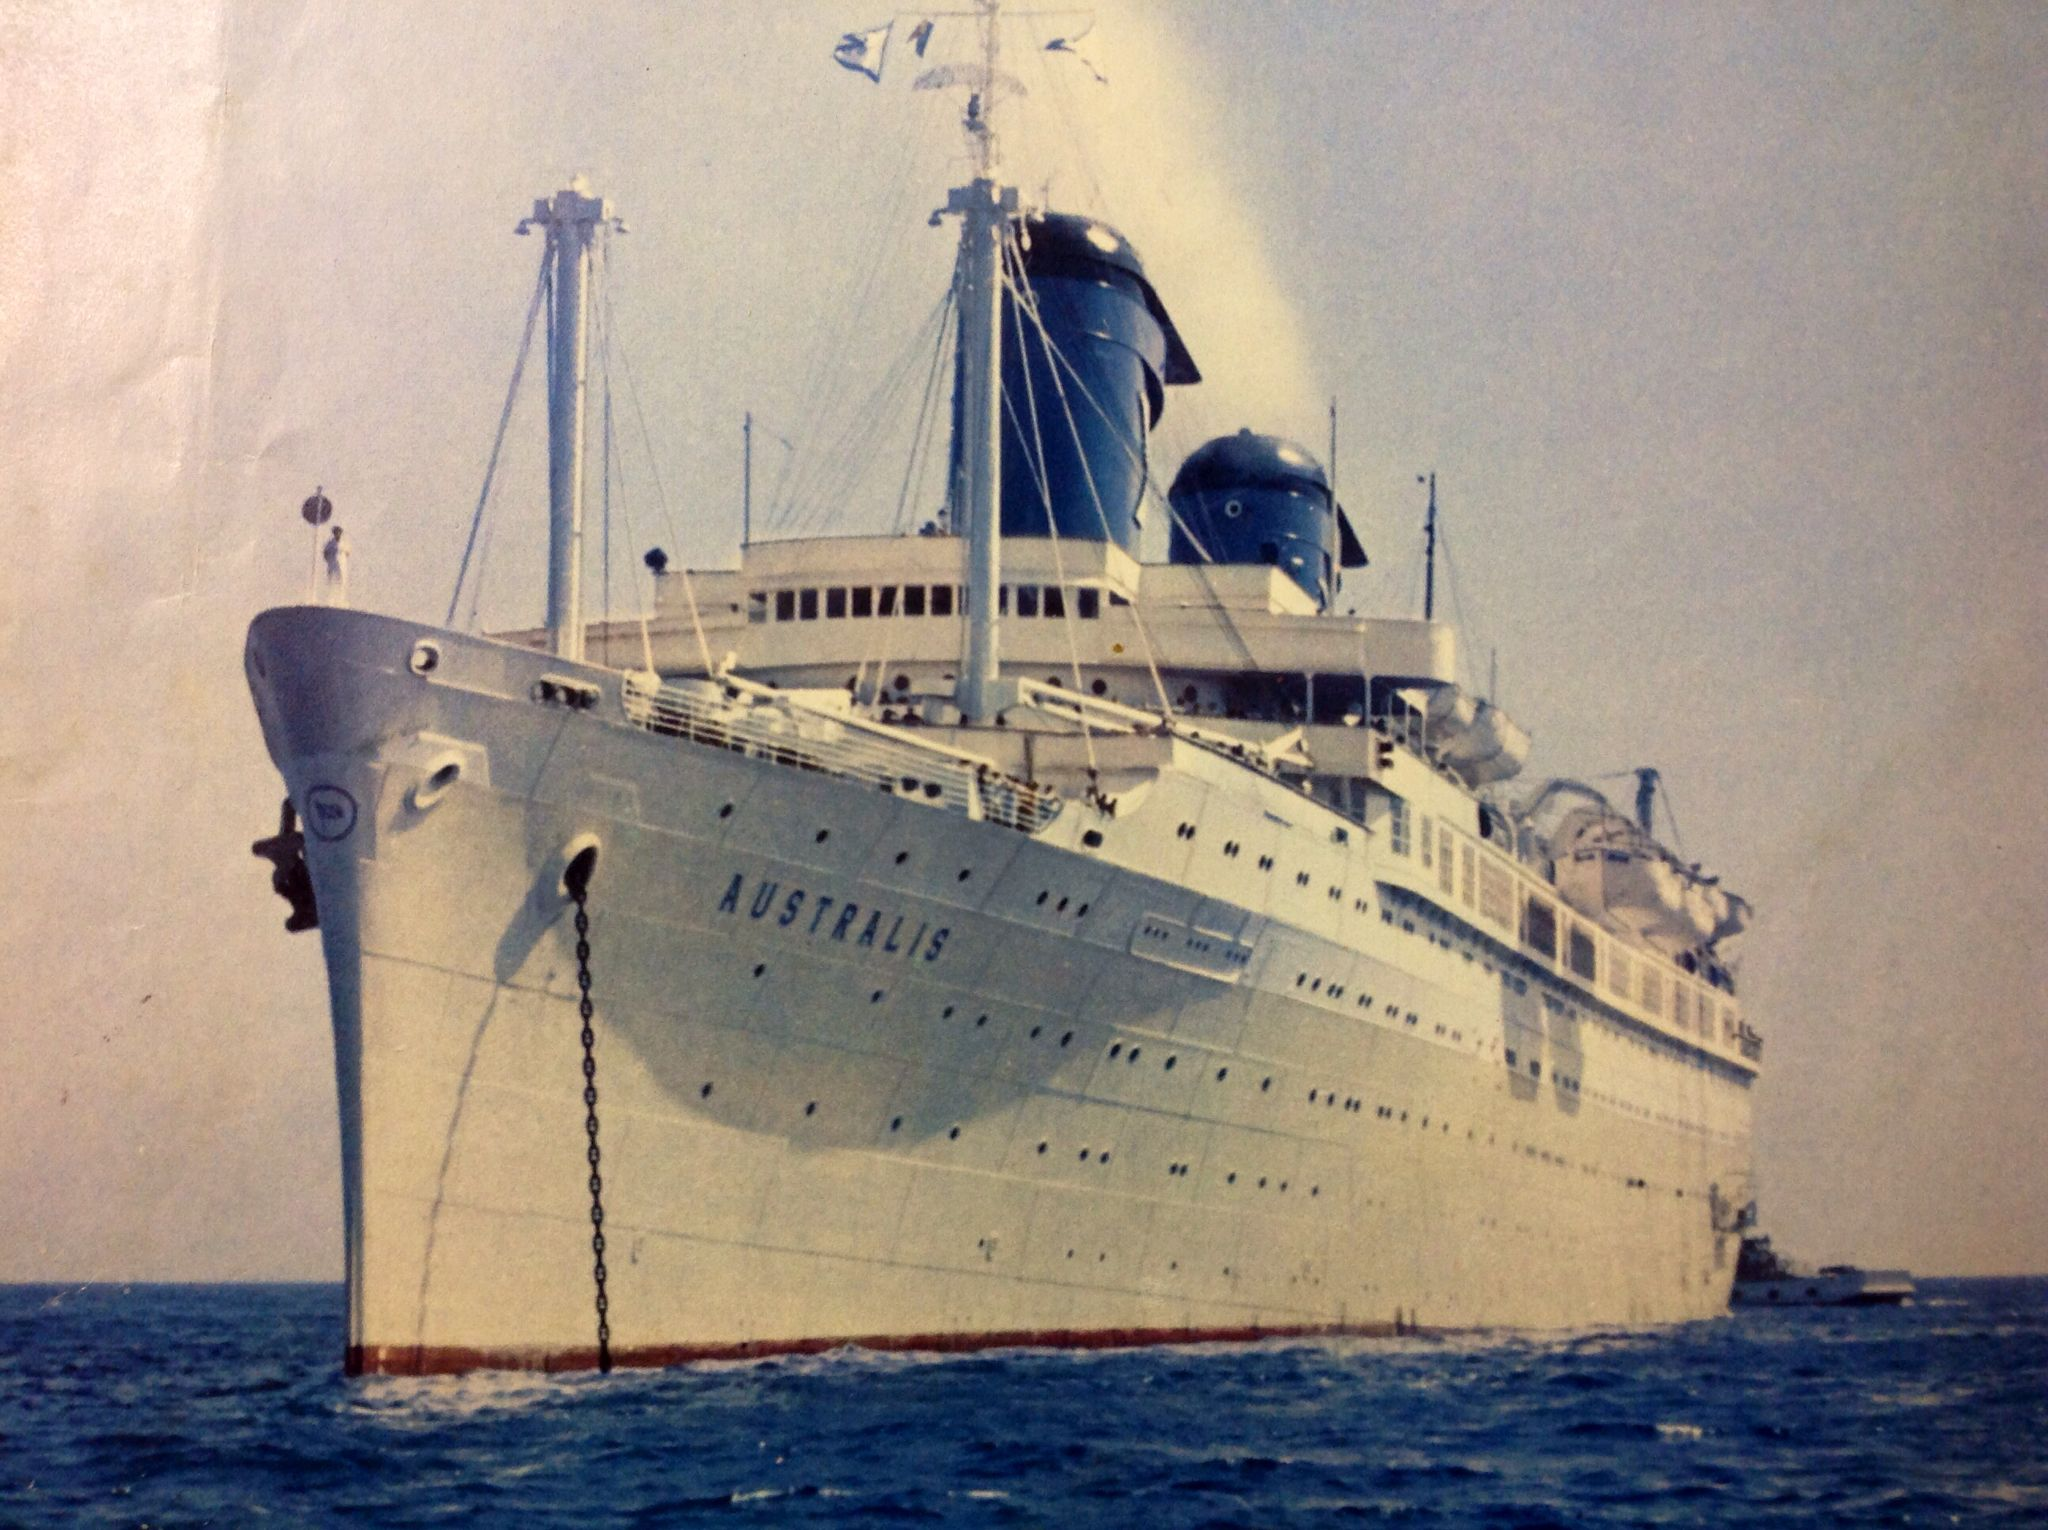 Chandris  Lines Australis the former United States Lines America